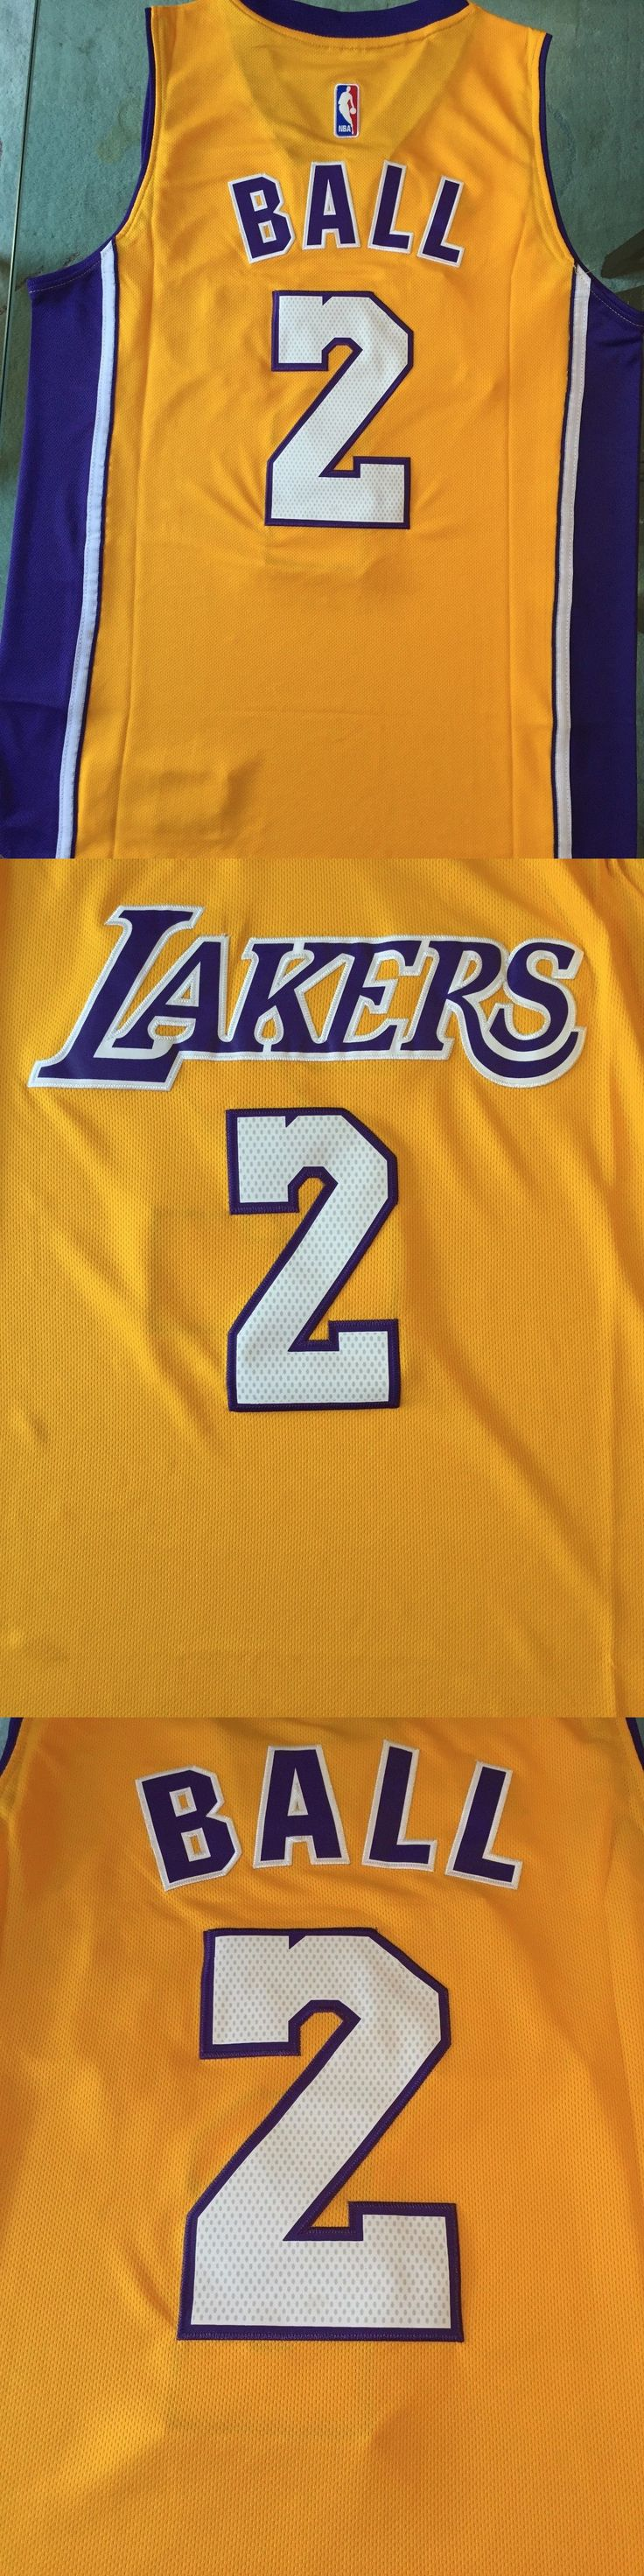 Basketball-NBA 24442: Nwt Lonzo Ball #2 Los Angeles Lakers Yellow Jersey Stitched Men -> BUY IT NOW ONLY: $38.99 on eBay!